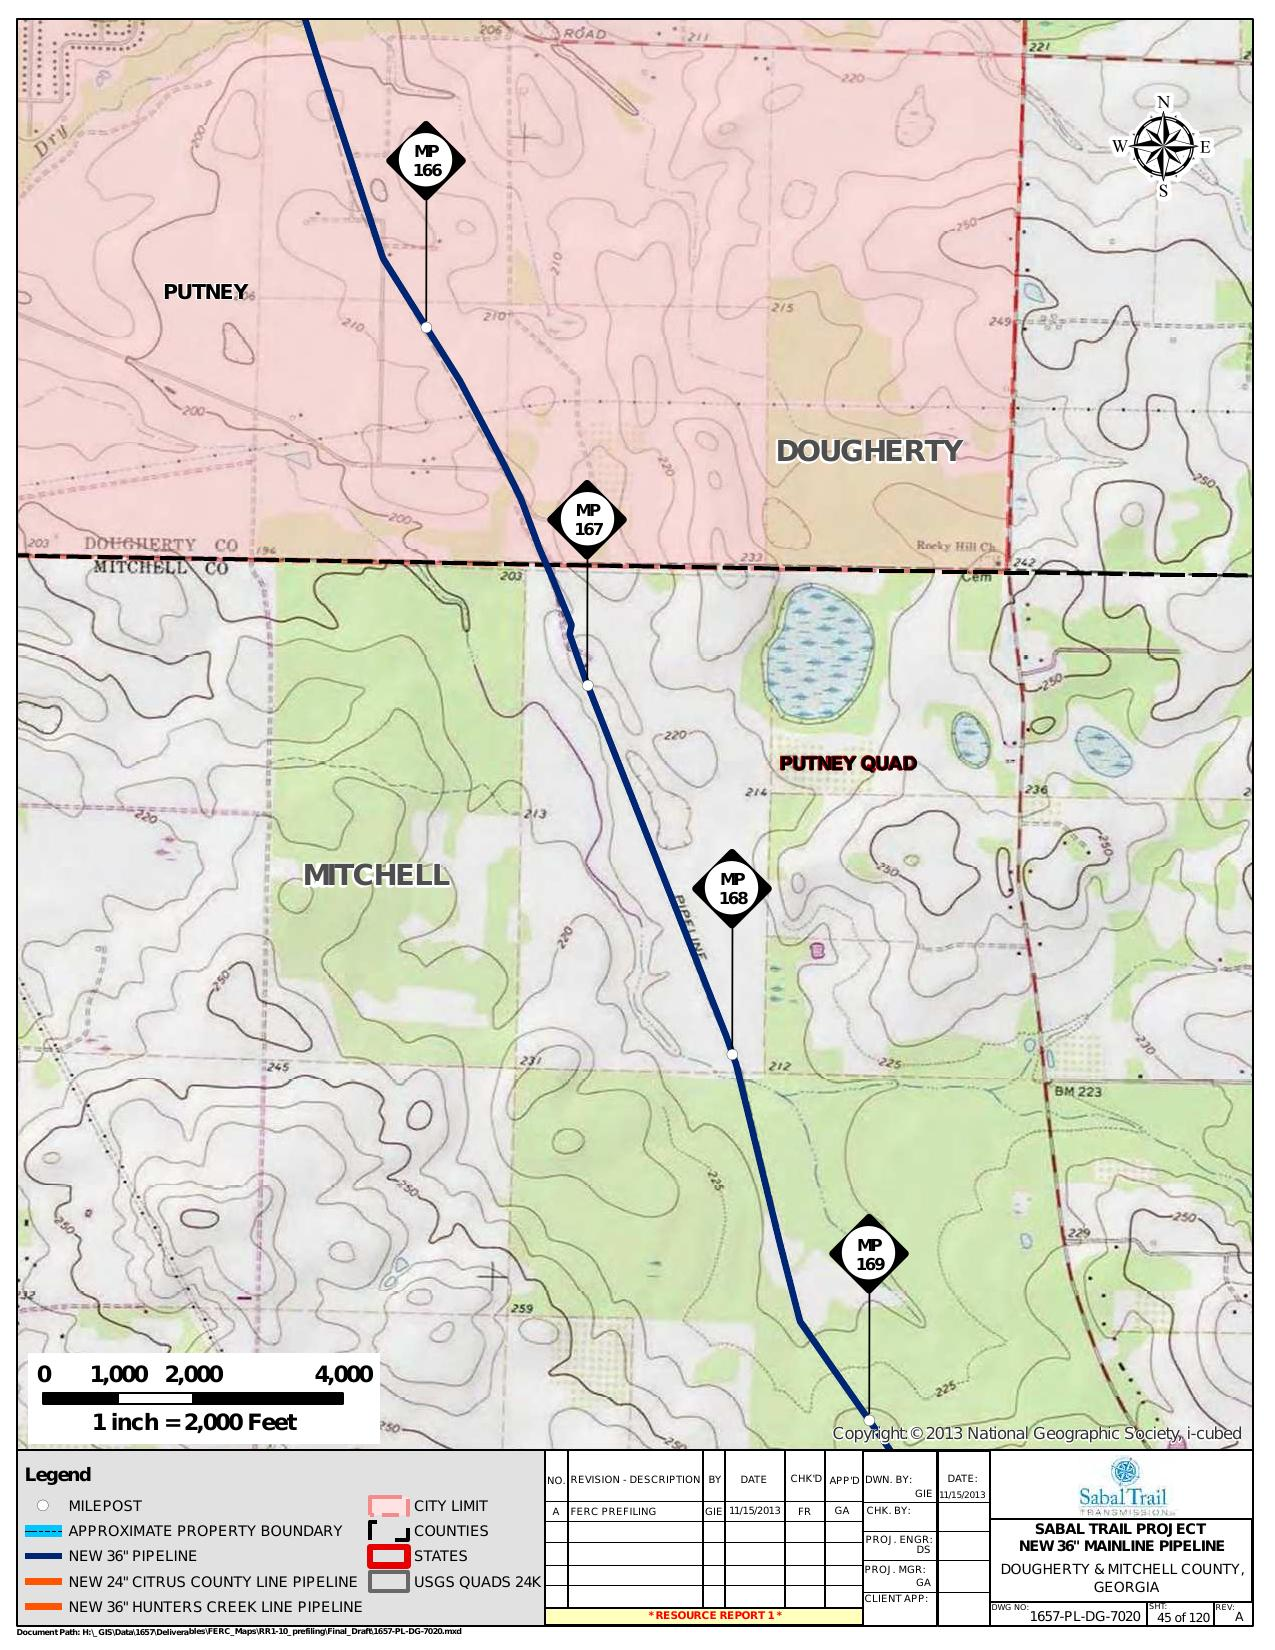 Putney Quad, Dougherty and Mitchell County, Georgia, in General Project Description, by SpectraBusters, for FERC Docket No. PF14-1-000, 15 November 2013, converted by SpectraBusters